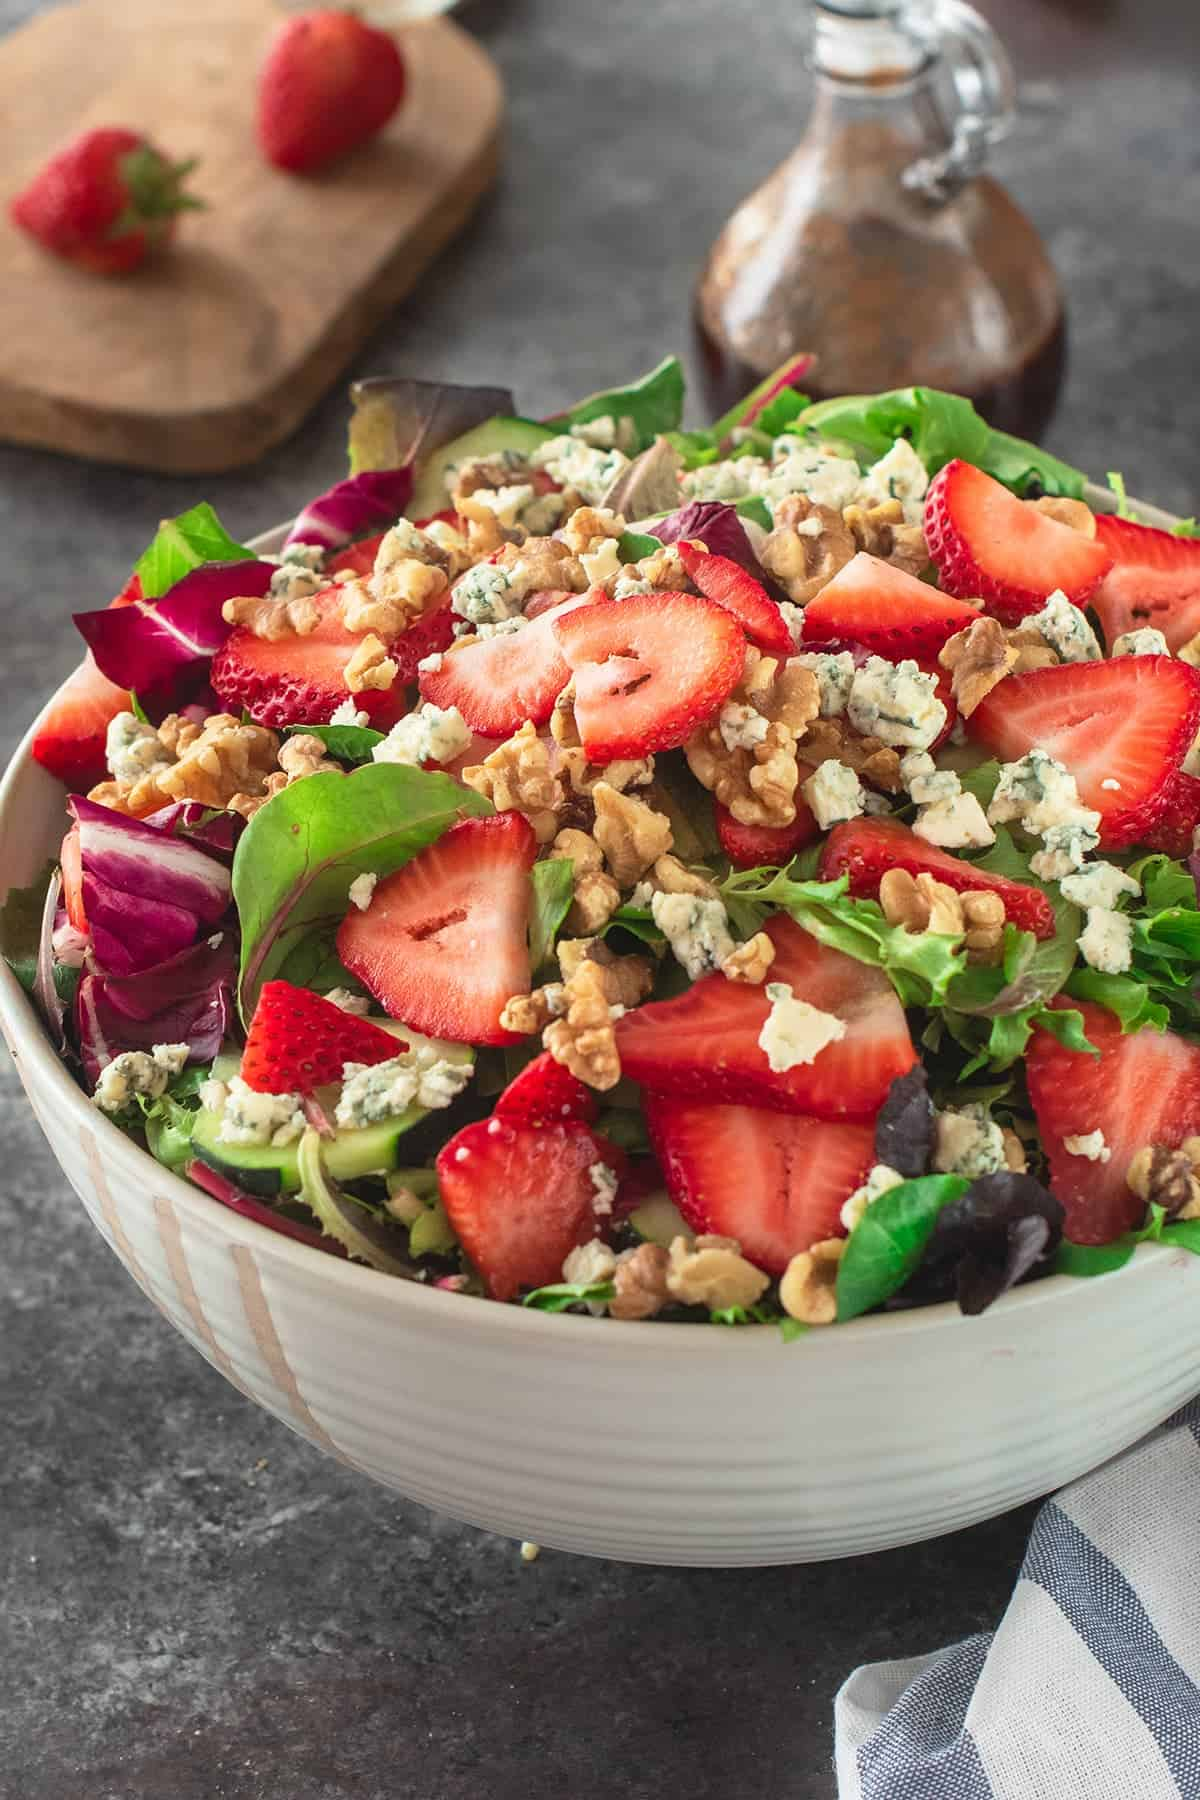 Strawberry Salad topped with whole strawberries, blue cheese, and walnuts with Glass dressing bottle of balsamic vinaigrette.